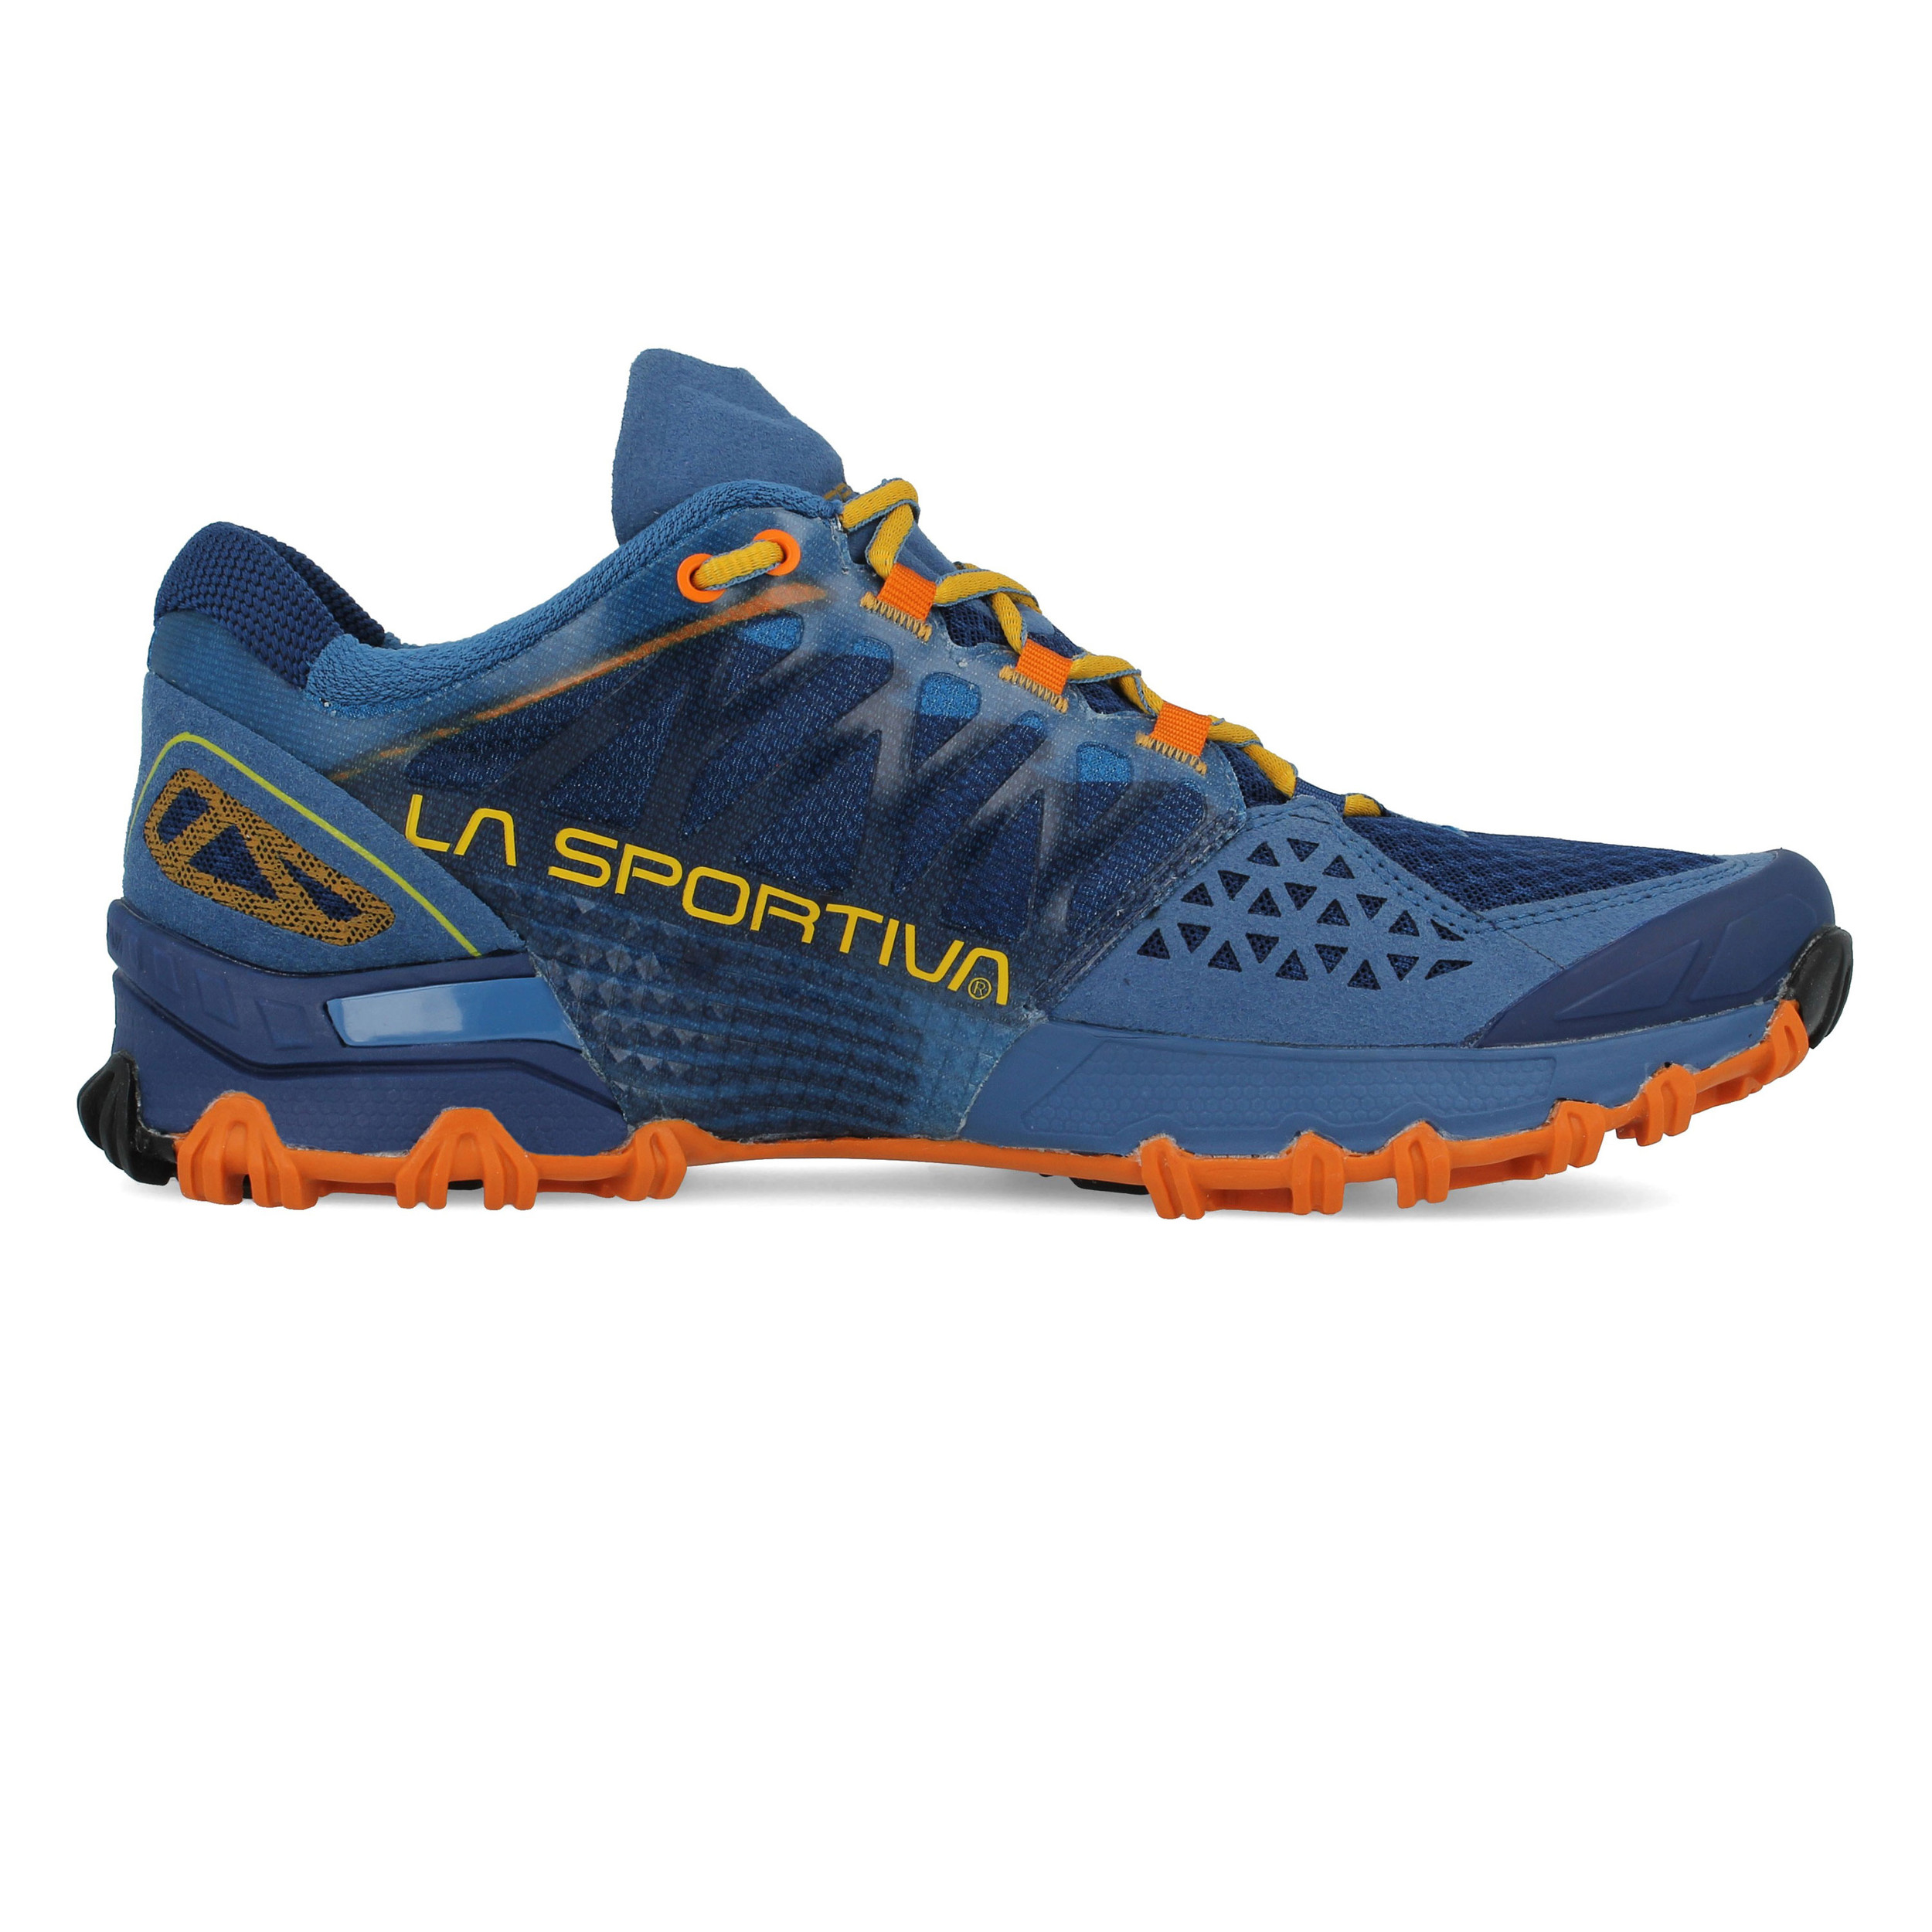 economico in vendita in vendita all'ingrosso moda di vendita caldo Details about La Sportiva Bushido Mens Orange Blue Trail Running Sports  Shoes Trainers